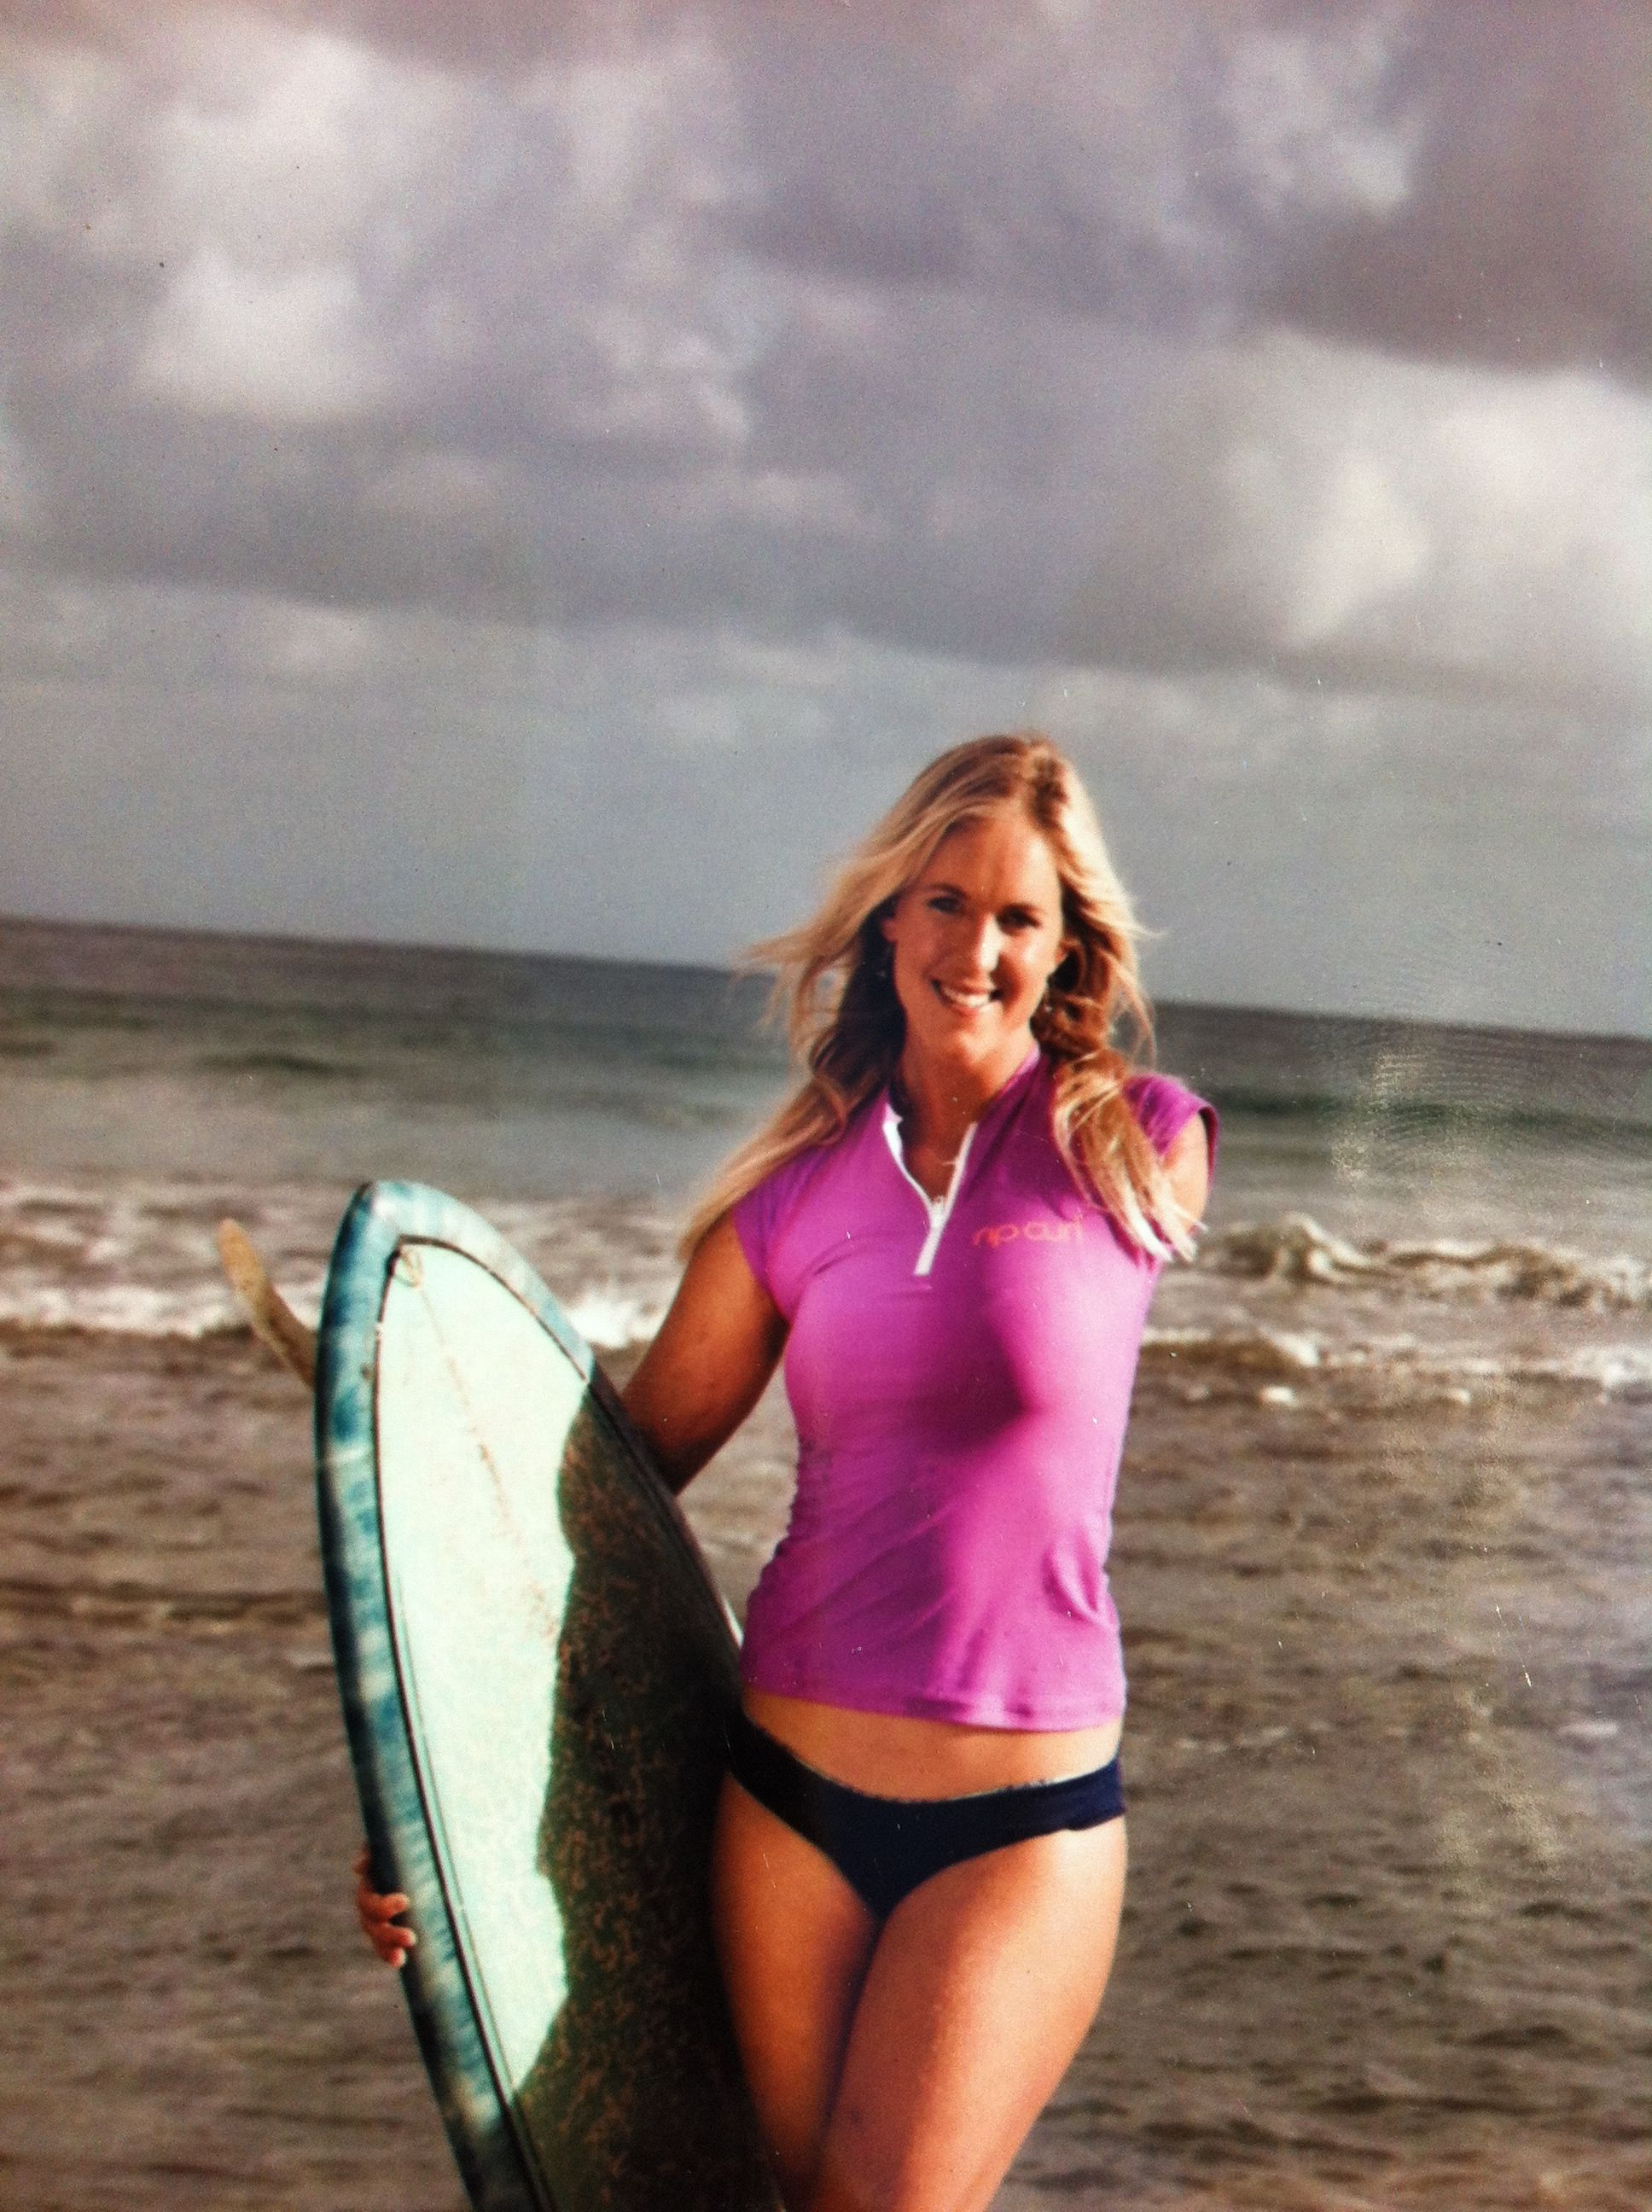 Top 10 Sexiest Hot Female Surfers